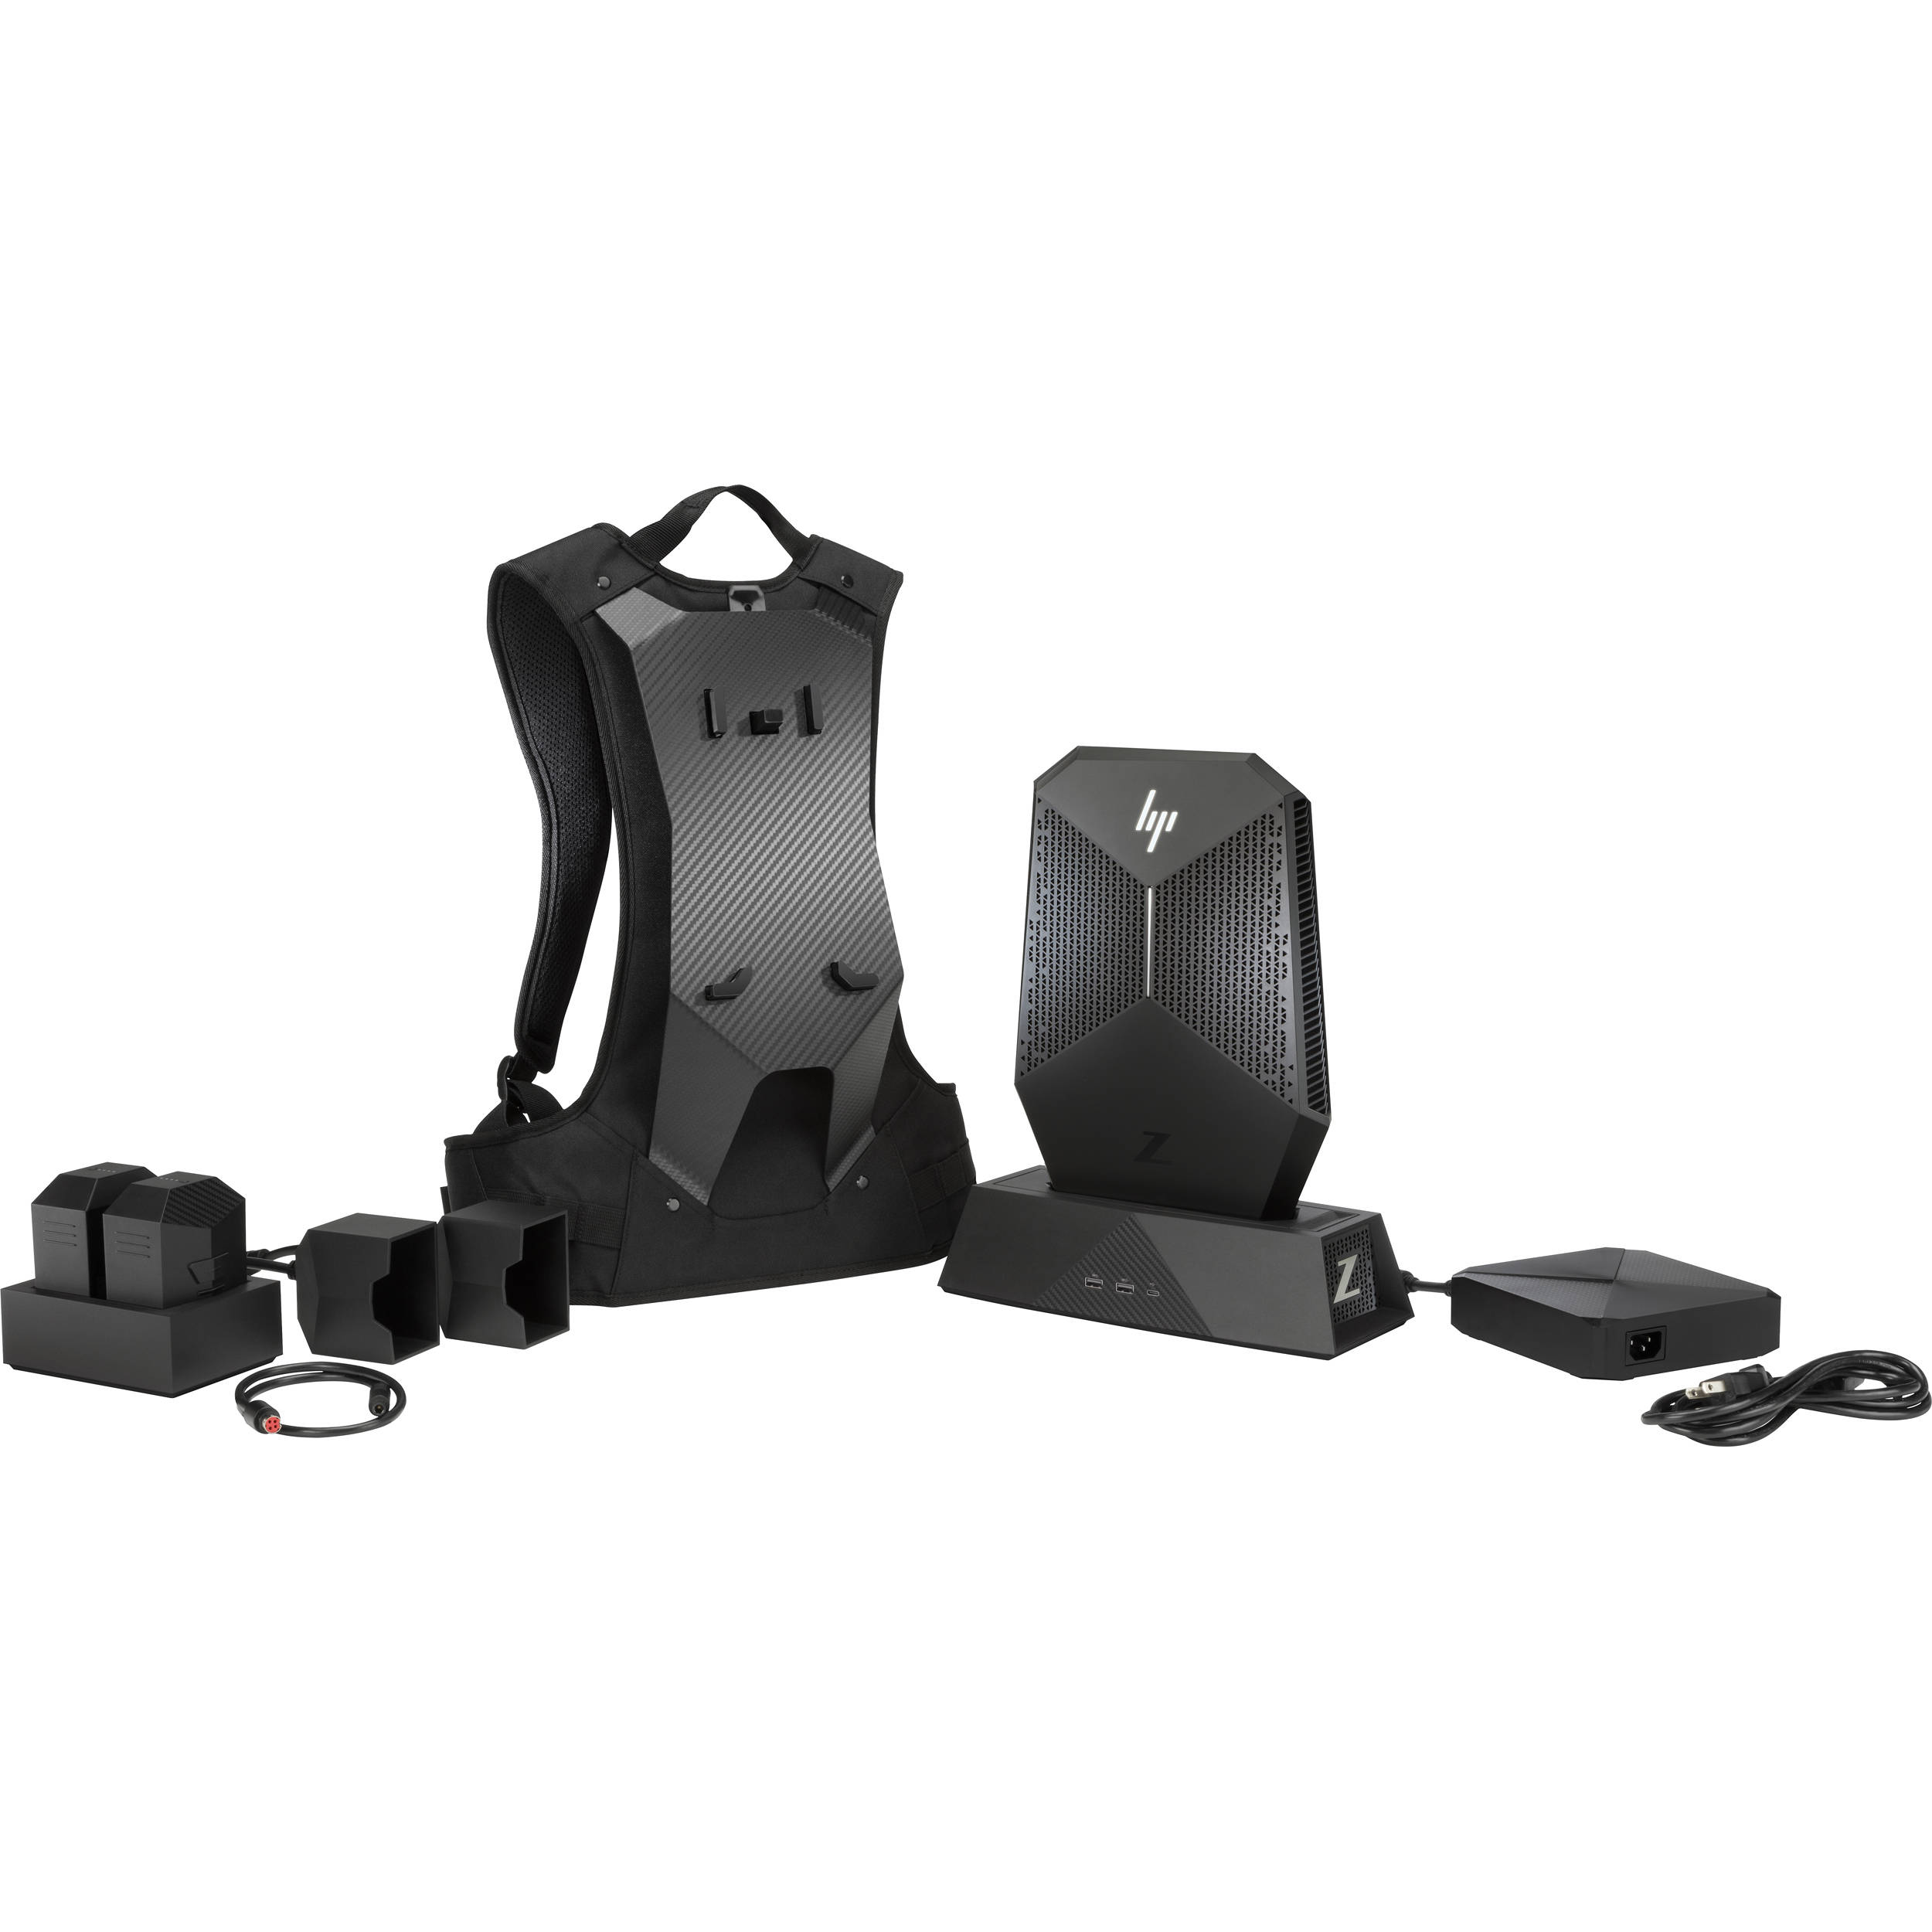 HP Z VR Backpack G1 Workstation